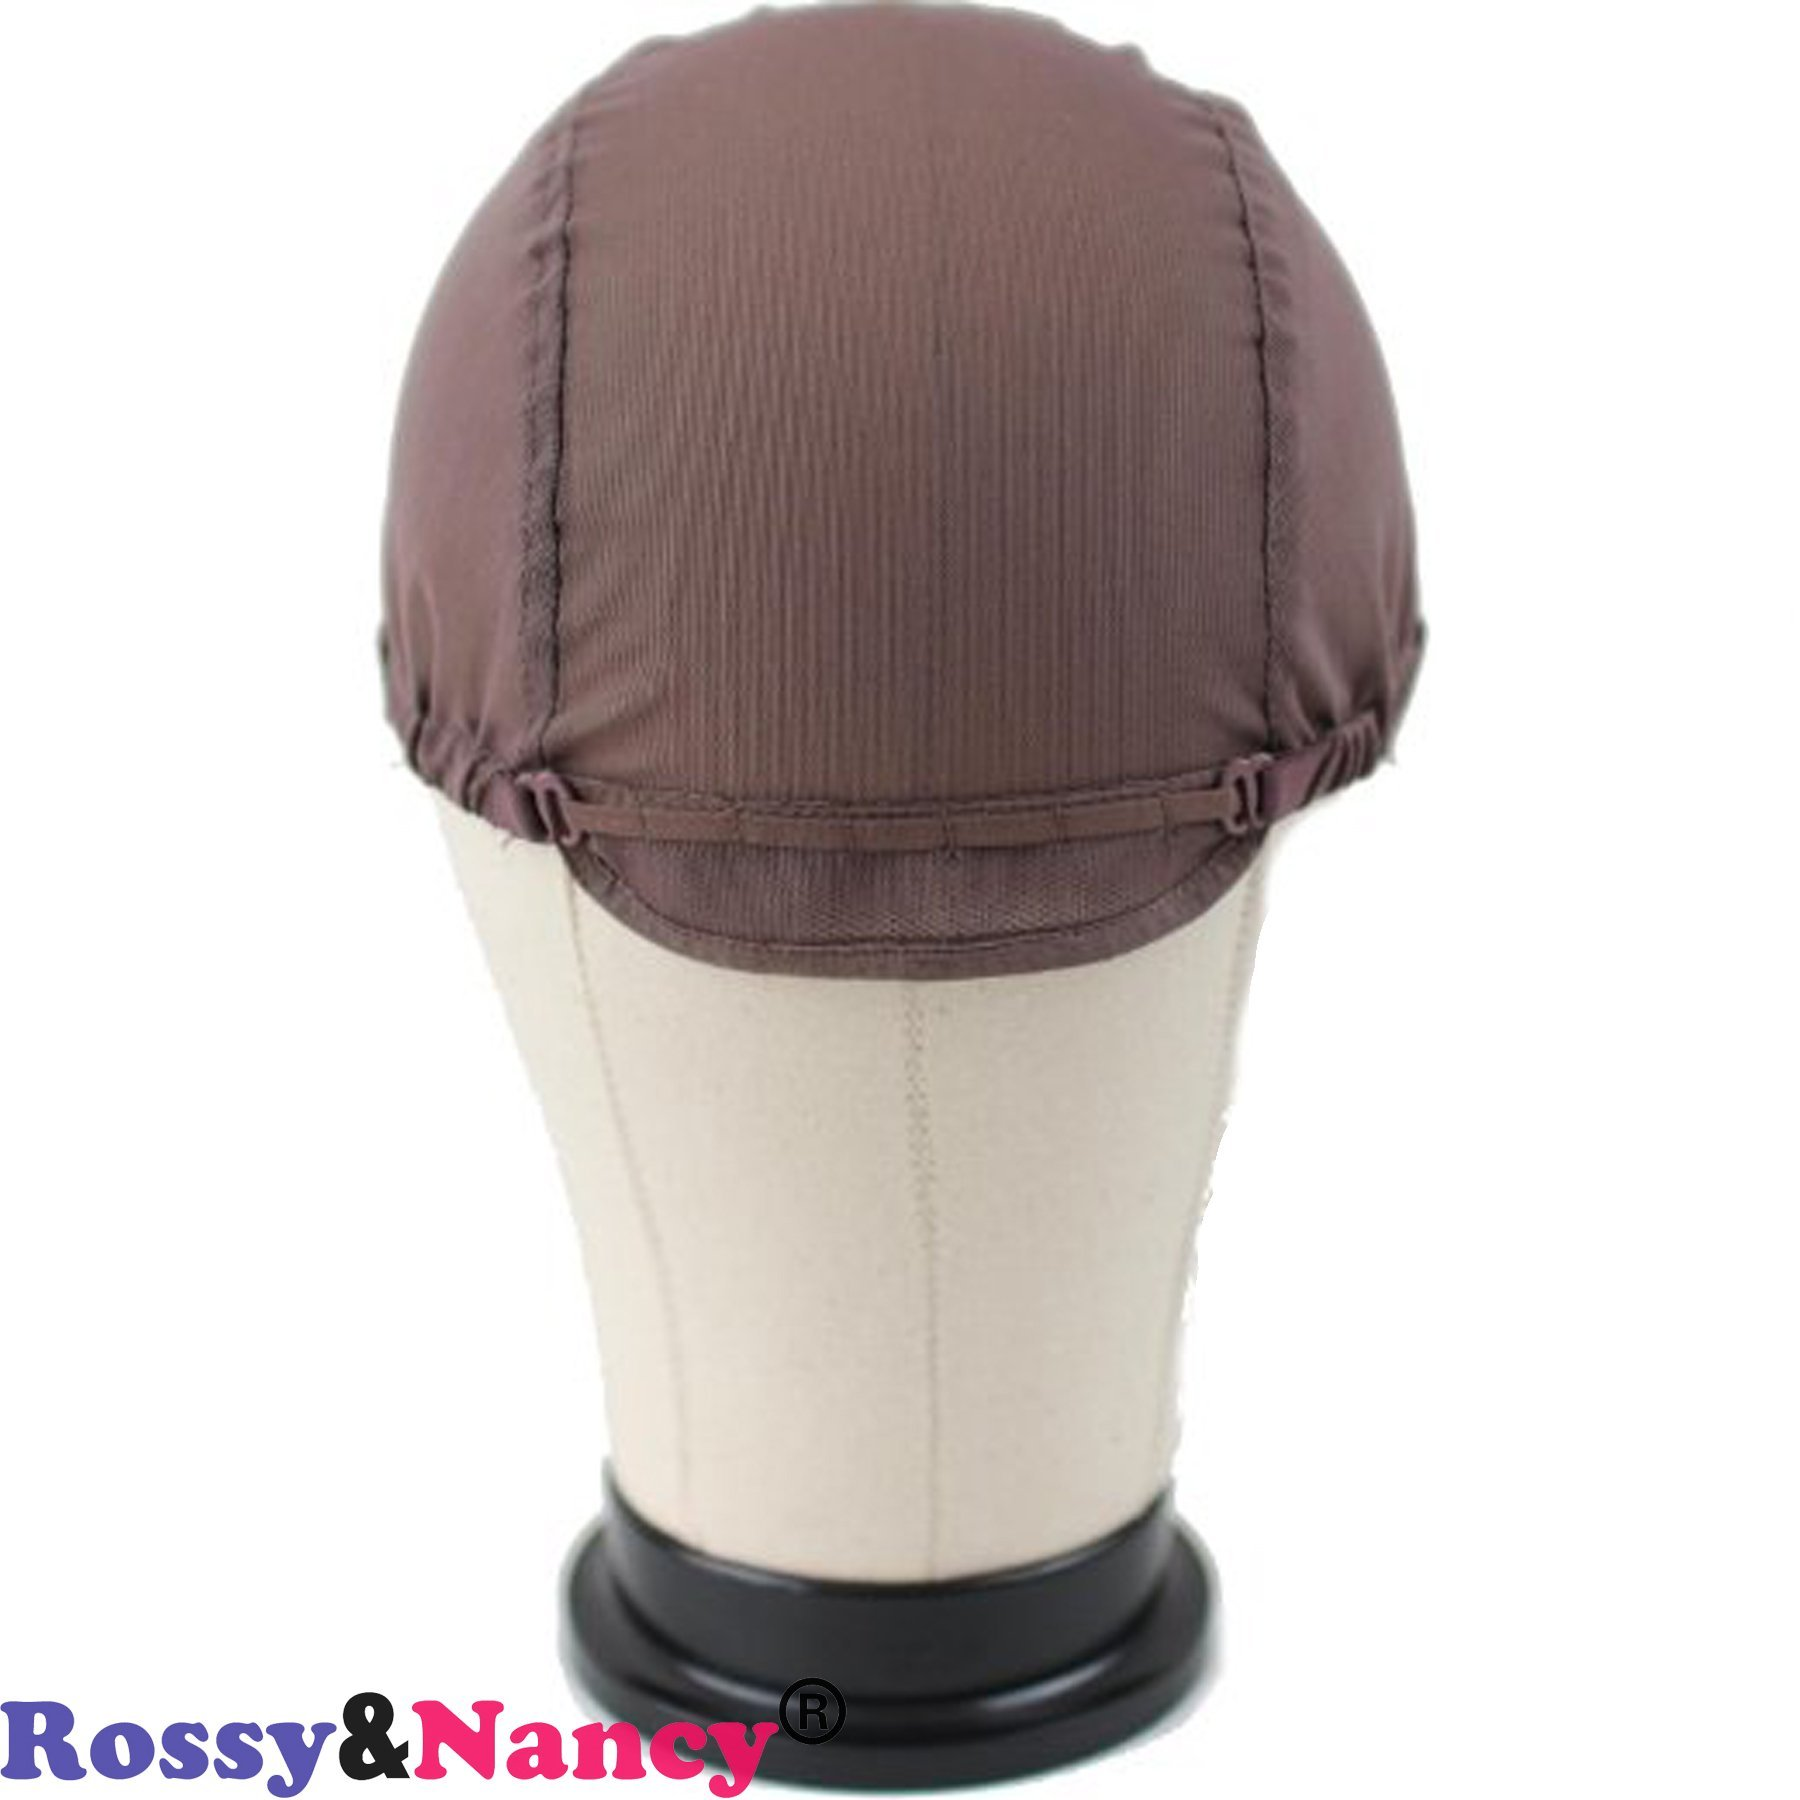 Rossy&Nancy Best Gluess Silk Swiss Lace Net Ear to ear stretch wig caps with adjustable straps for making Wigs by Rossy&Nancy (Image #3)